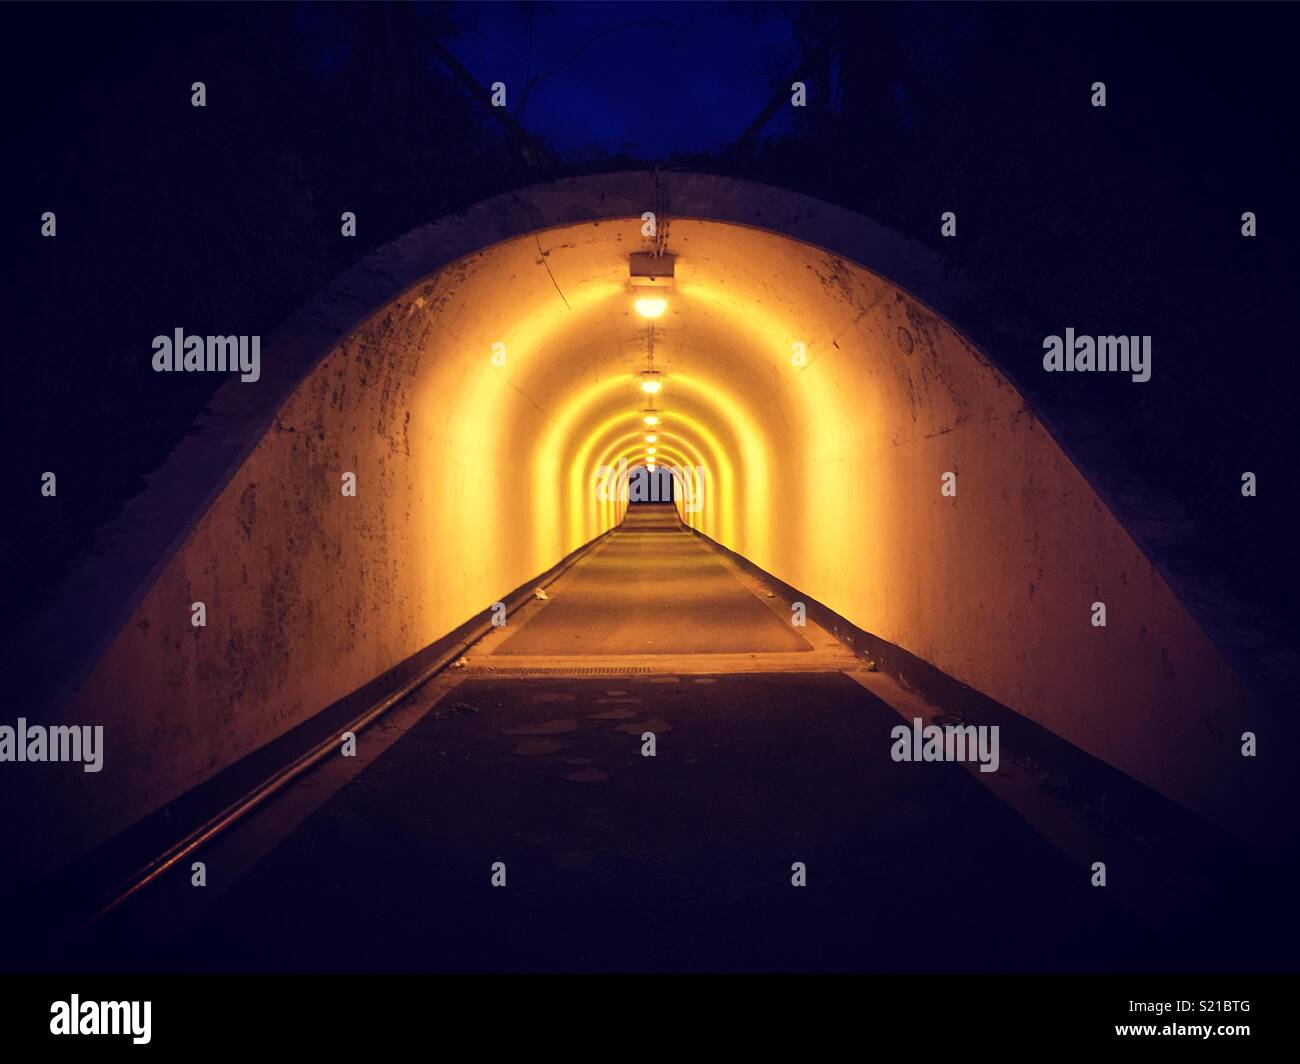 Lights in Tunnel in Birmingham at night. Stock Photo